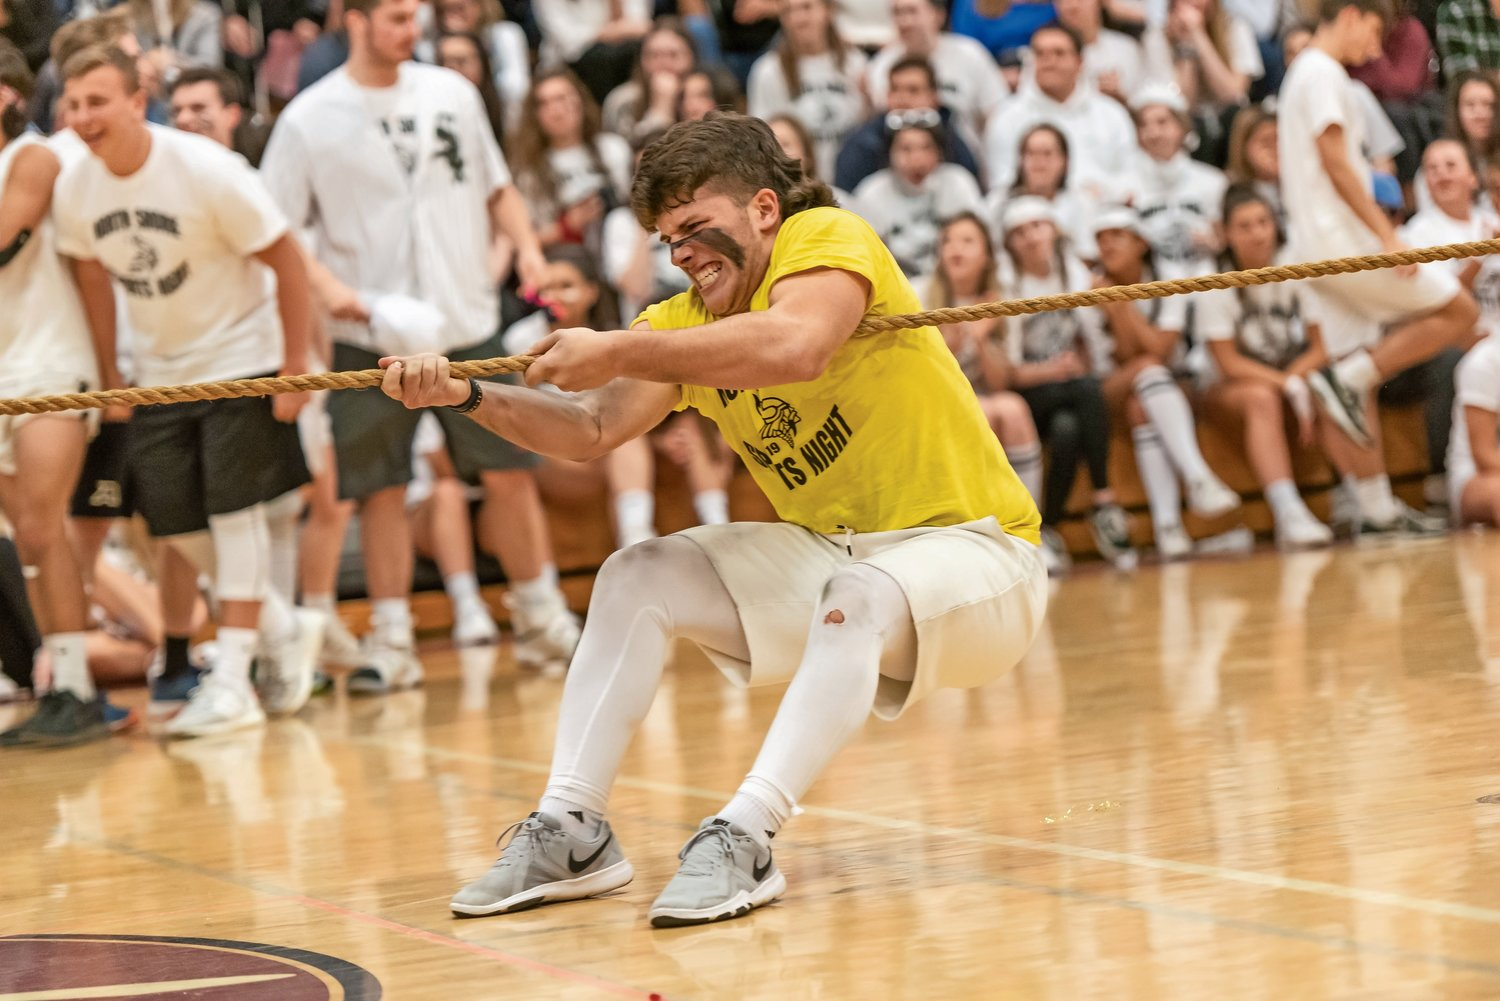 Junior Chris Damphouse was determined to win the tug of war.